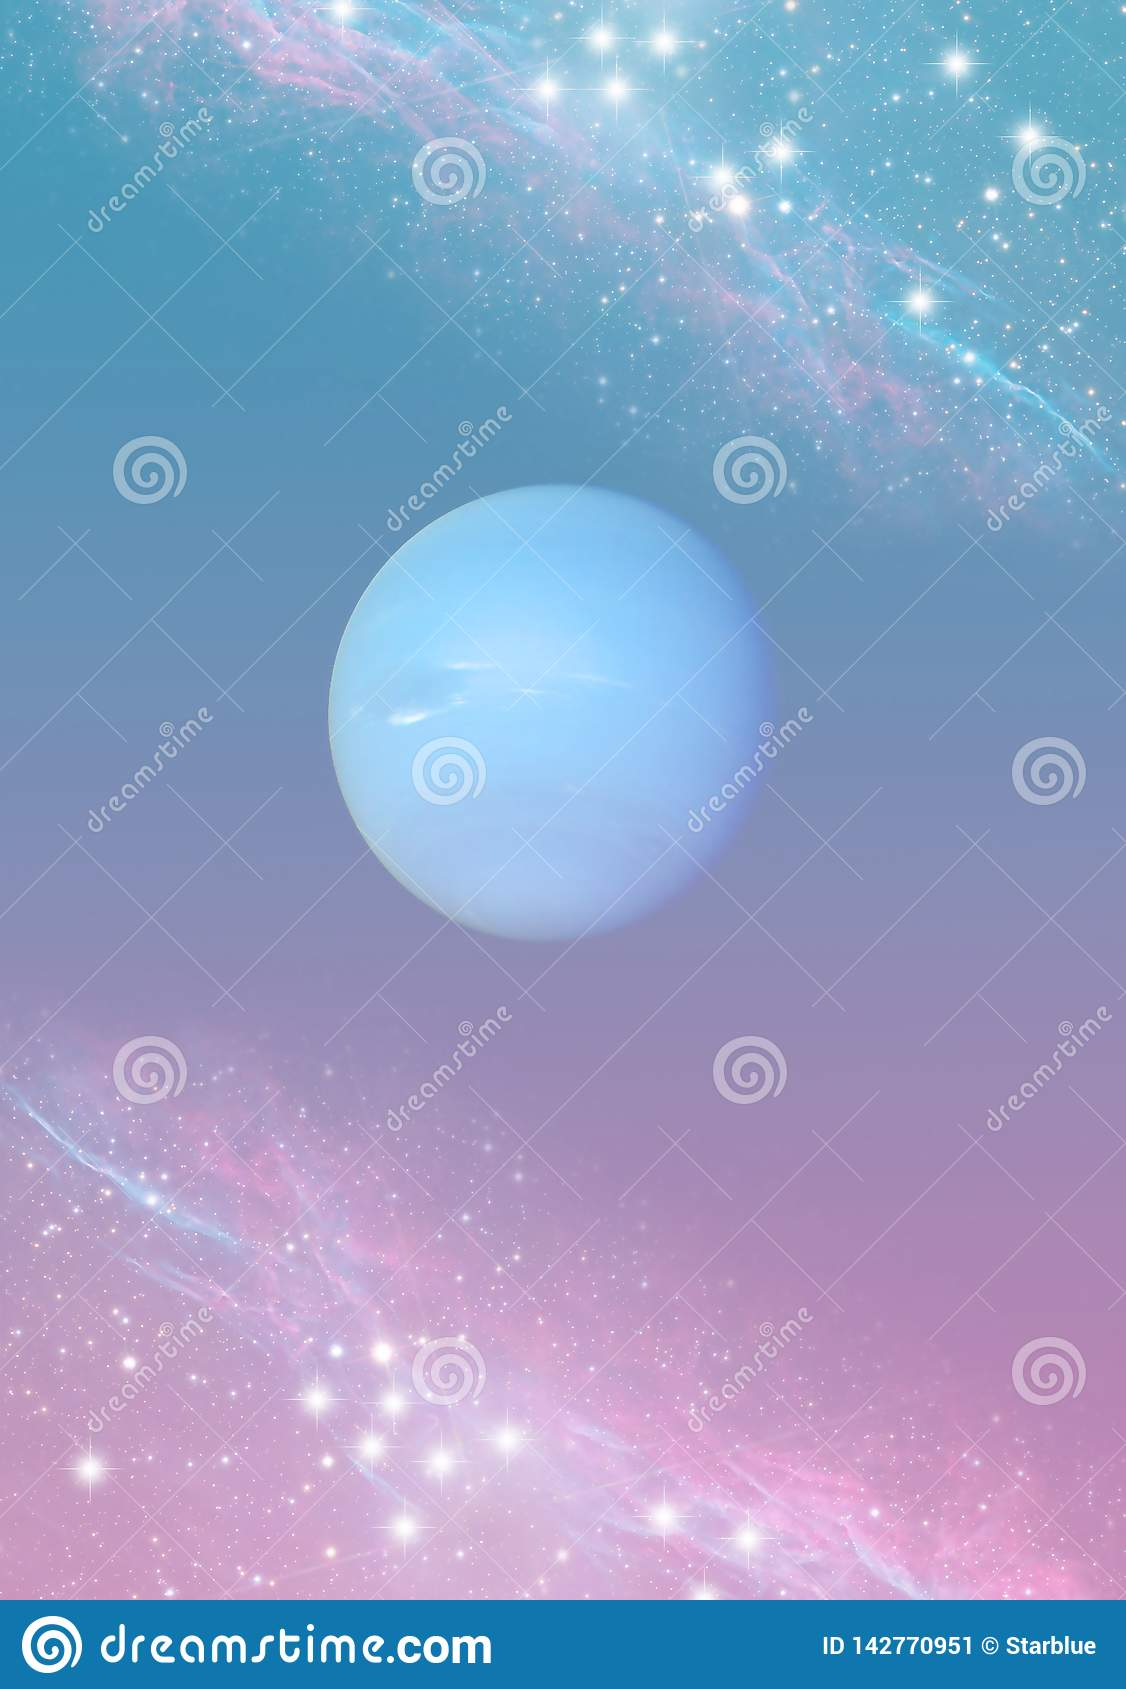 Mystic spiritual magic esoteric background with the planet Neptune, stars in blue pink colors